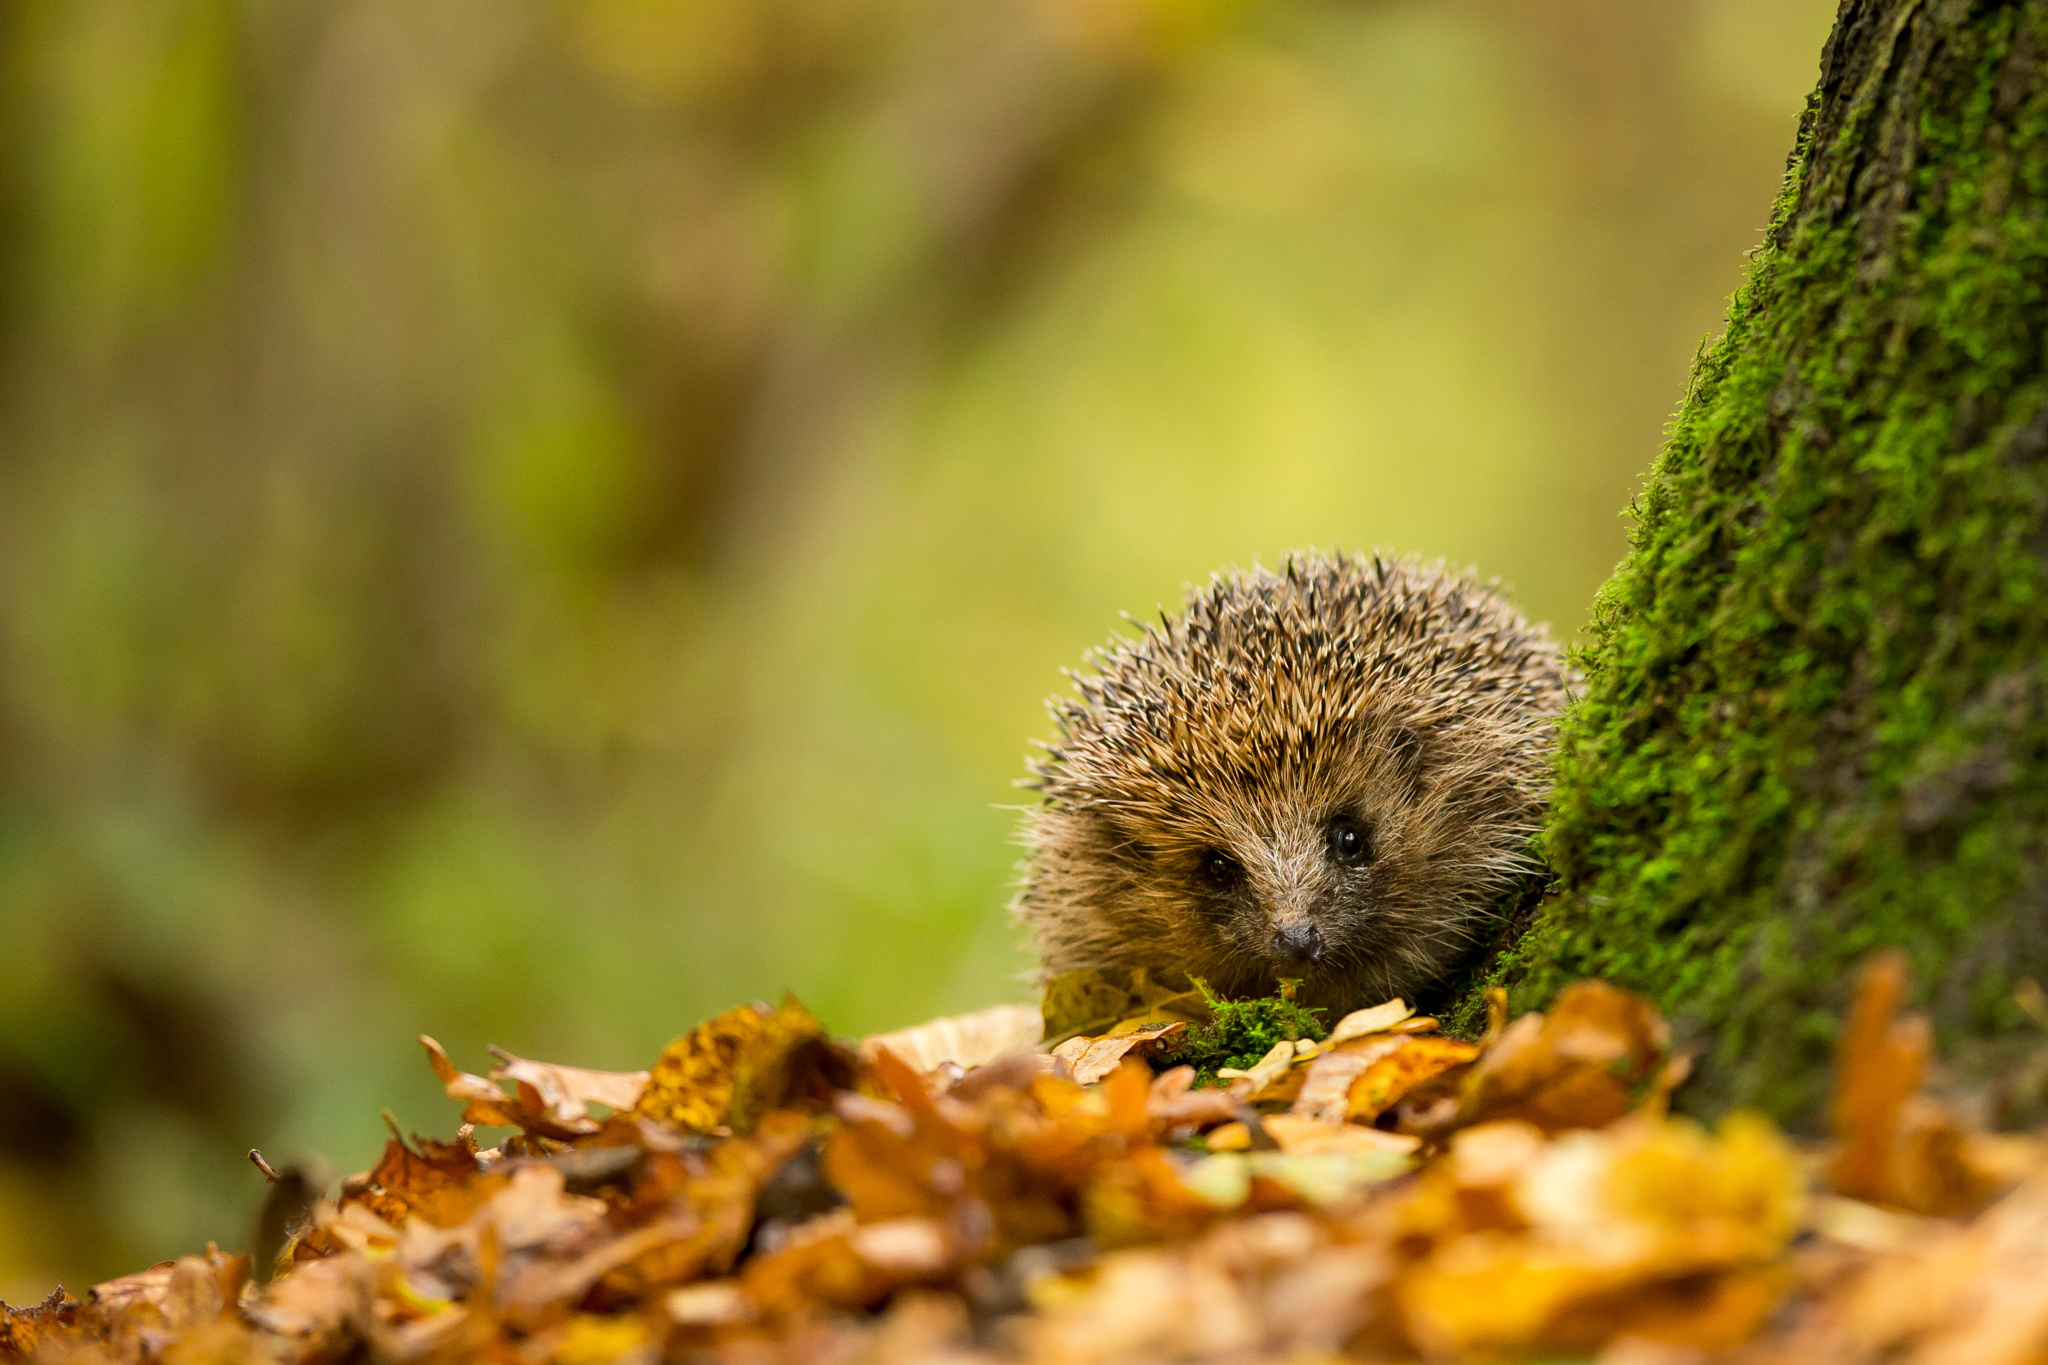 Hedgehog Wallpapers Pictures Images HD Wallpapers Download Free Images Wallpaper [1000image.com]